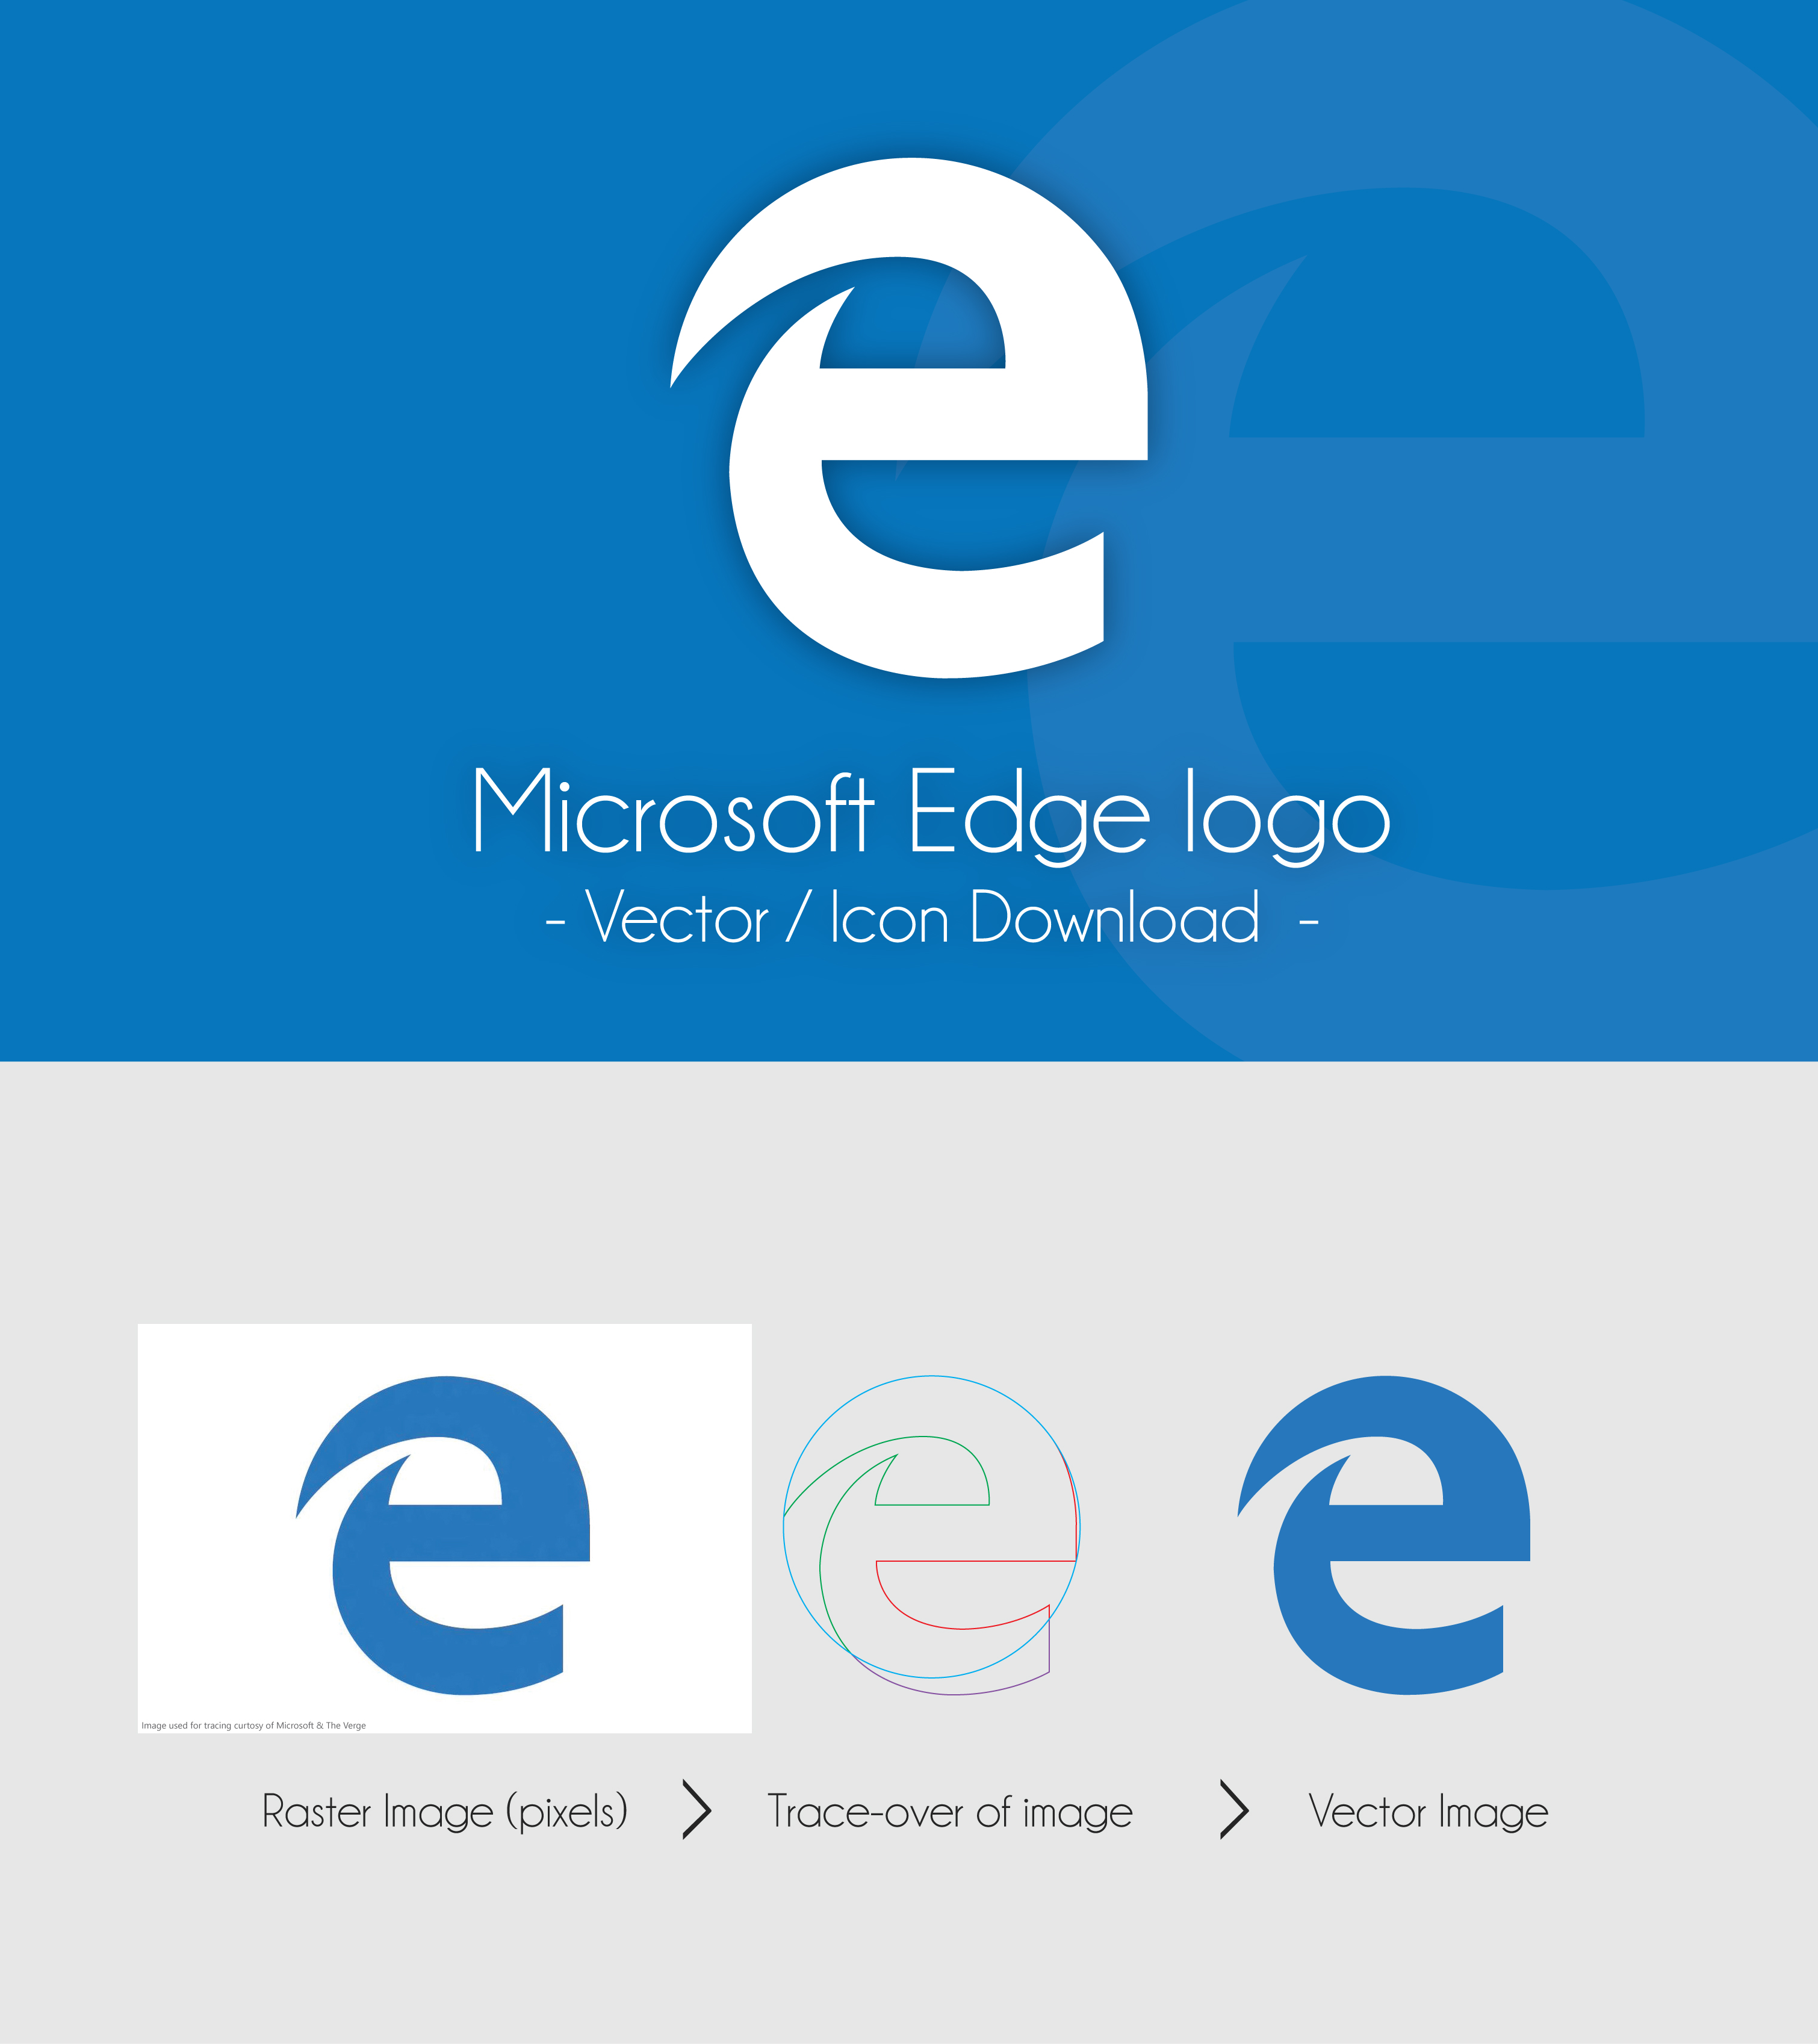 Microsoft Edge Logo   Icon and Vector Download by dAKirby309 on 3020x3395